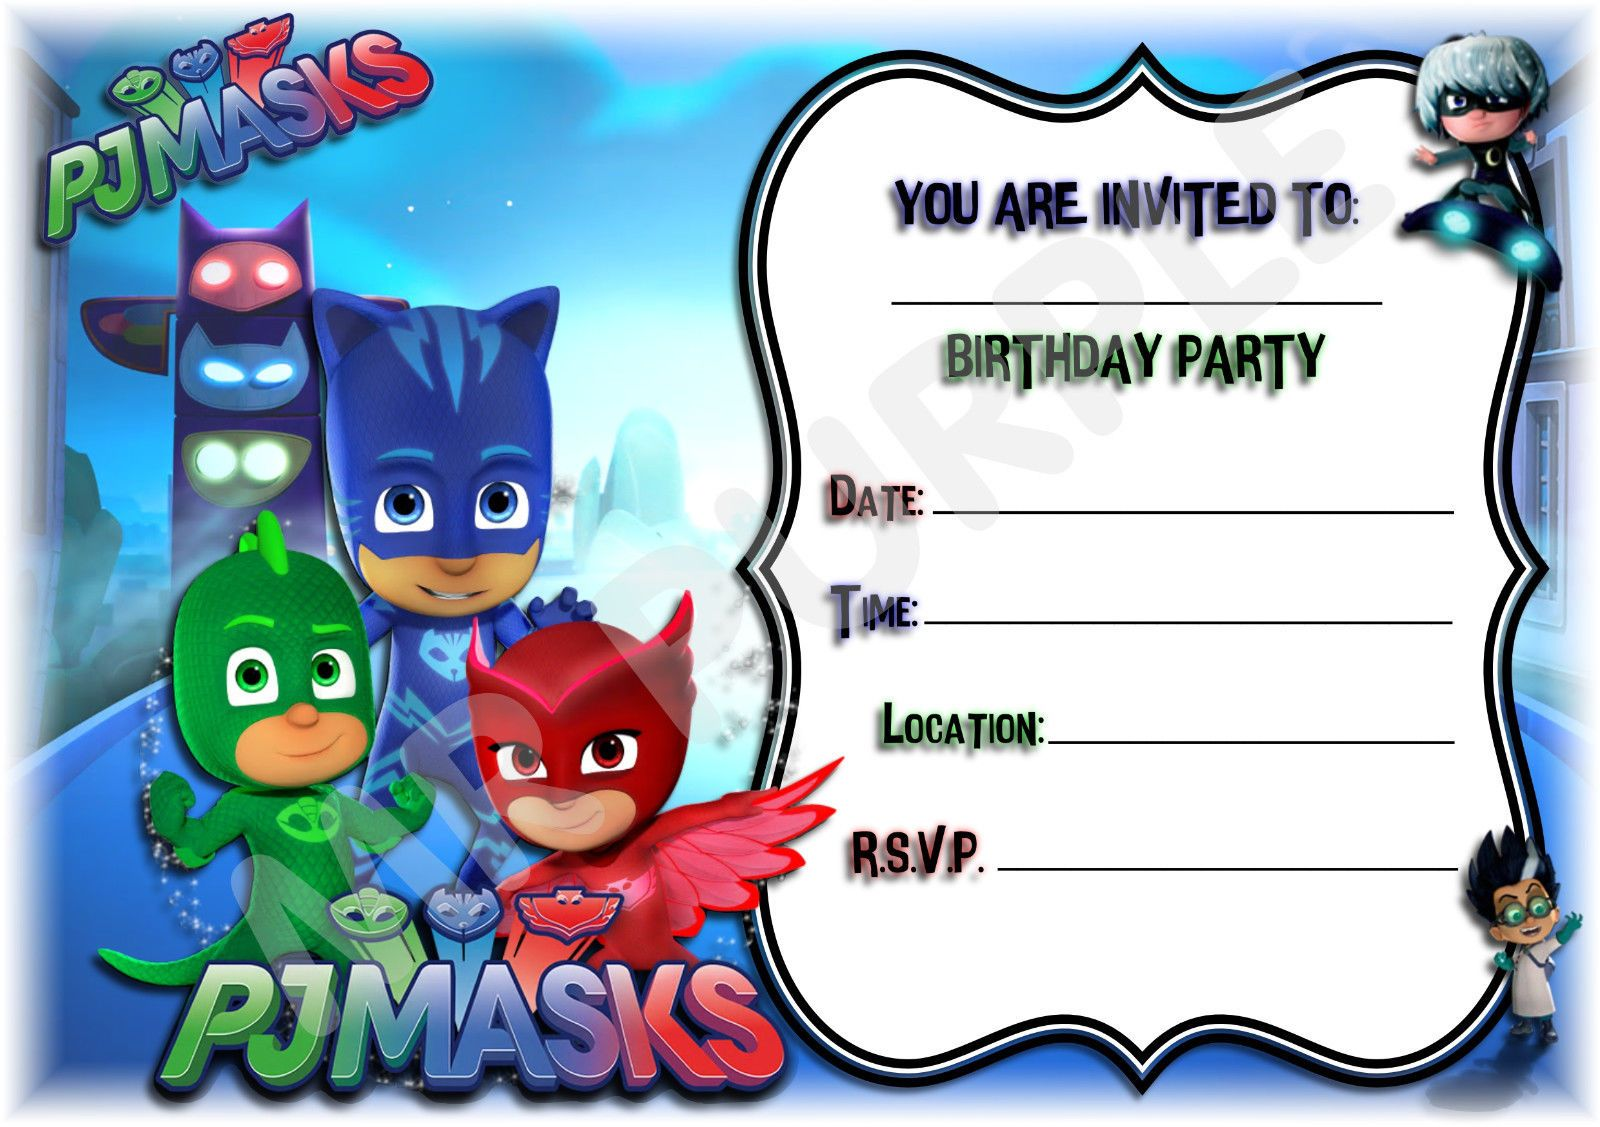 Pj Masks Kids Childrens Party Invitations X 12 Invites For Parties Landscape